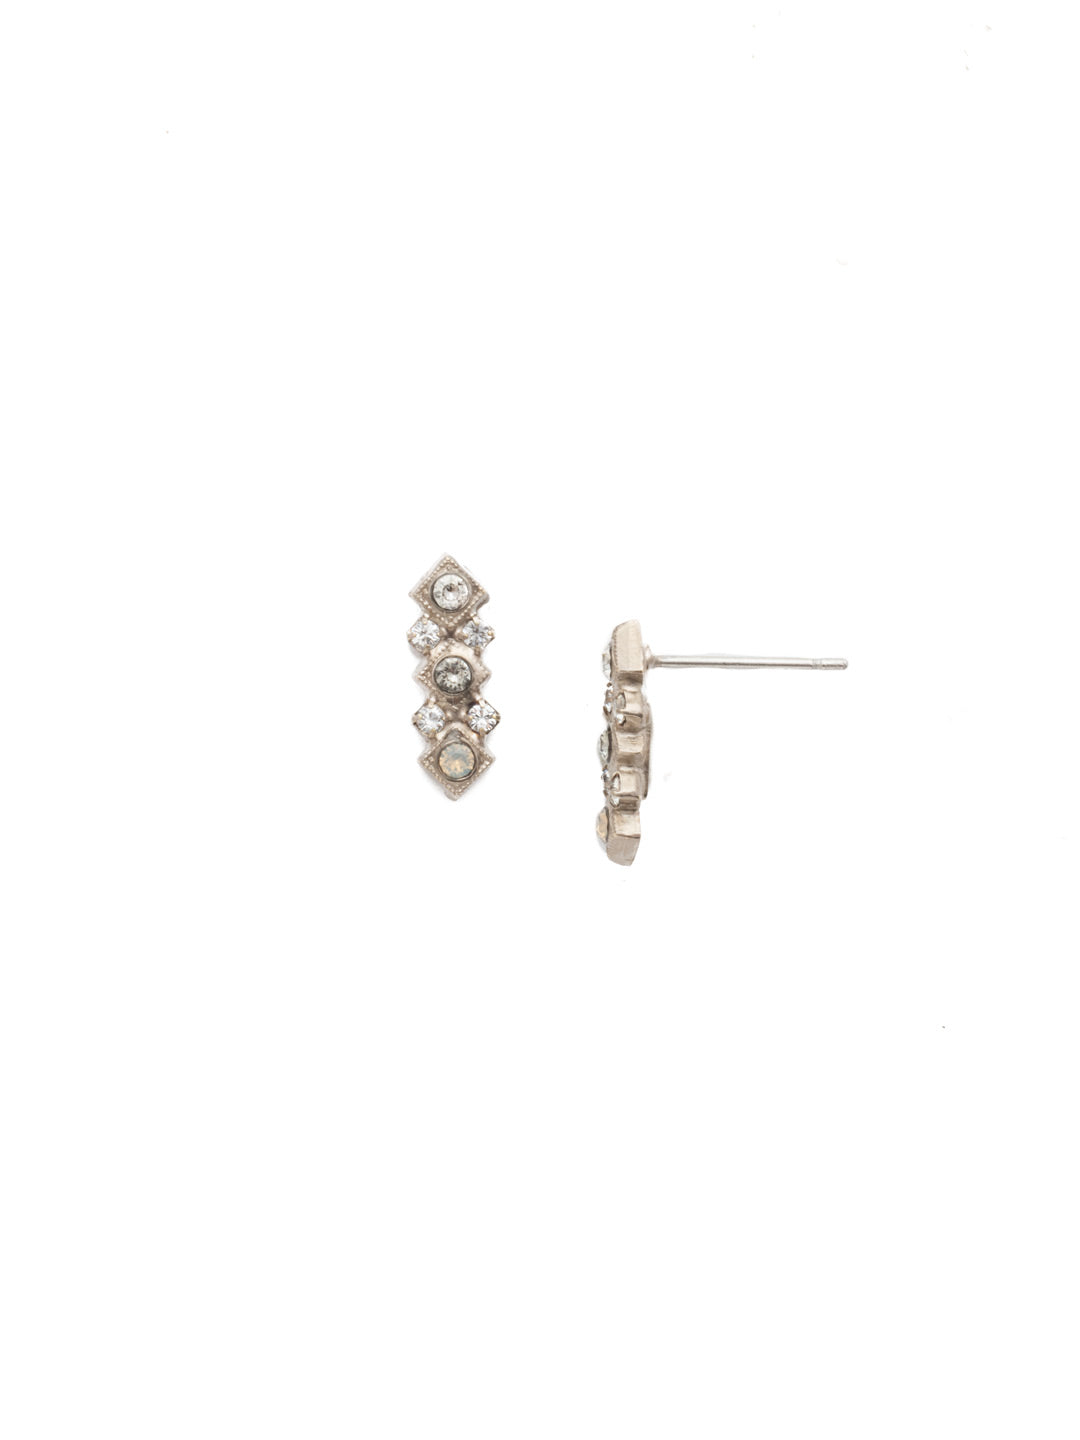 Madeline Stud Earrings - EEN4ASSTC